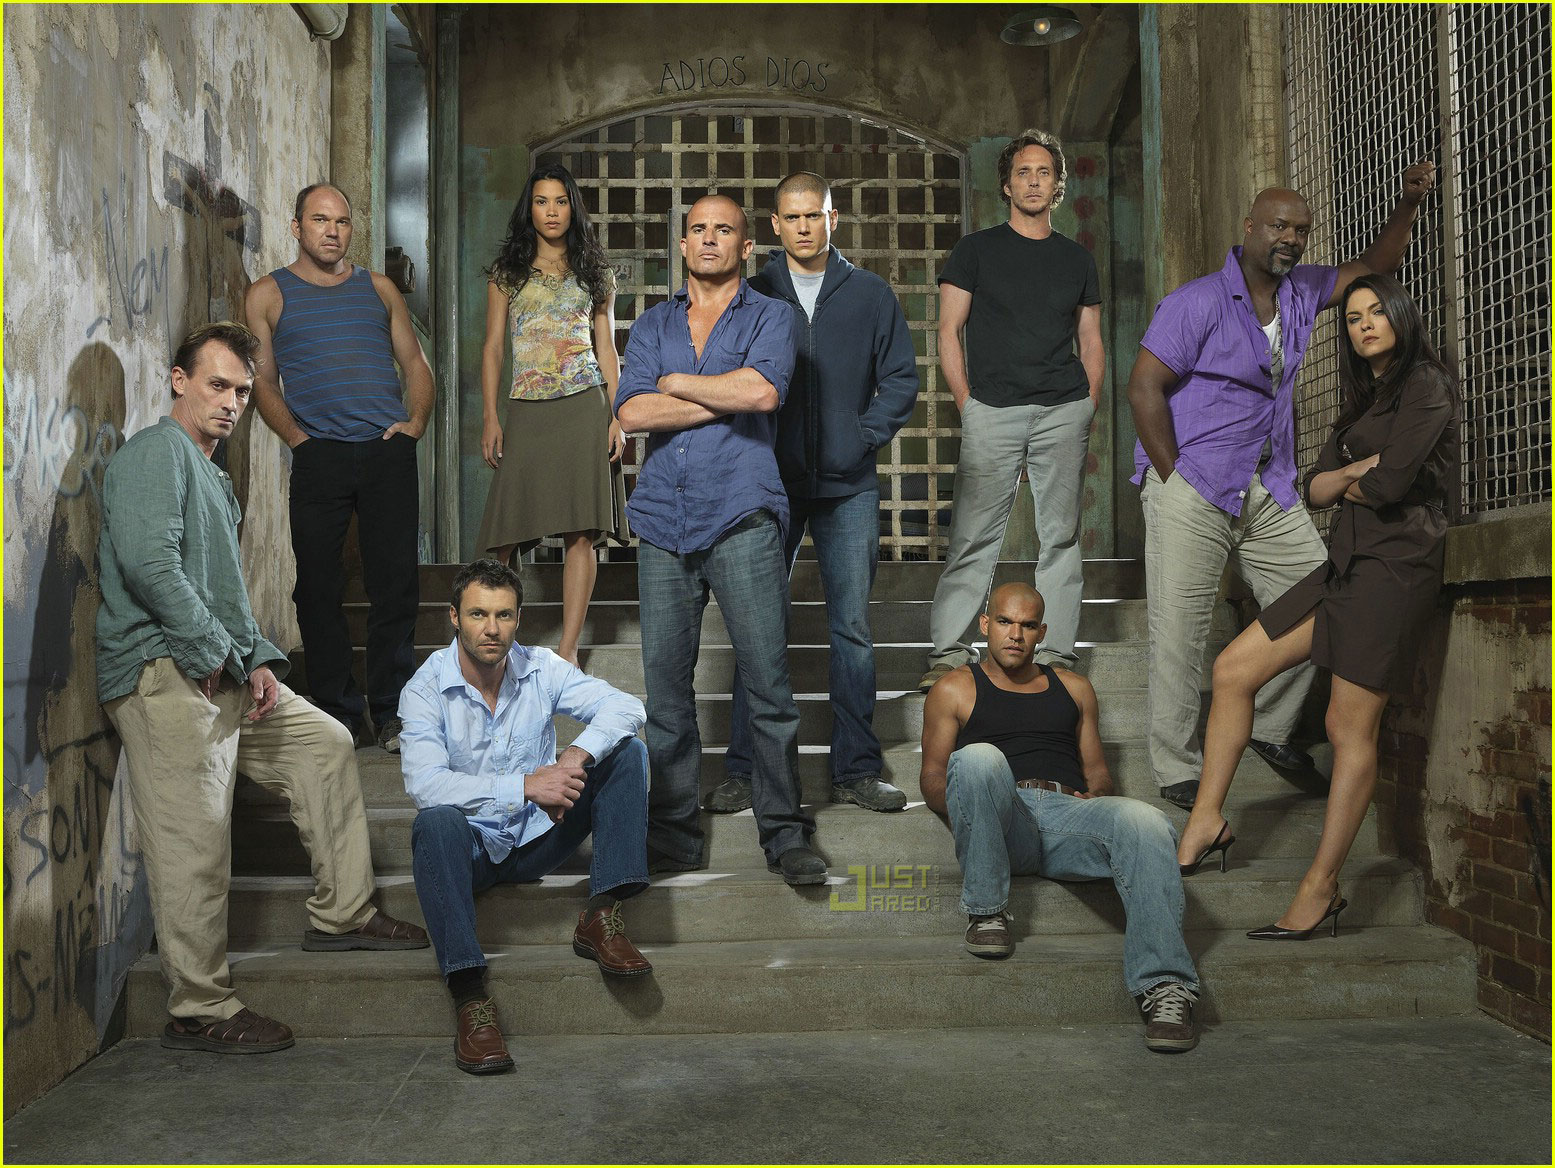 DESCARGAR GRATIS PRISION BREAK 4 TEMPORADA EN ESPAÑOL Prison-break-season-3-promos-11